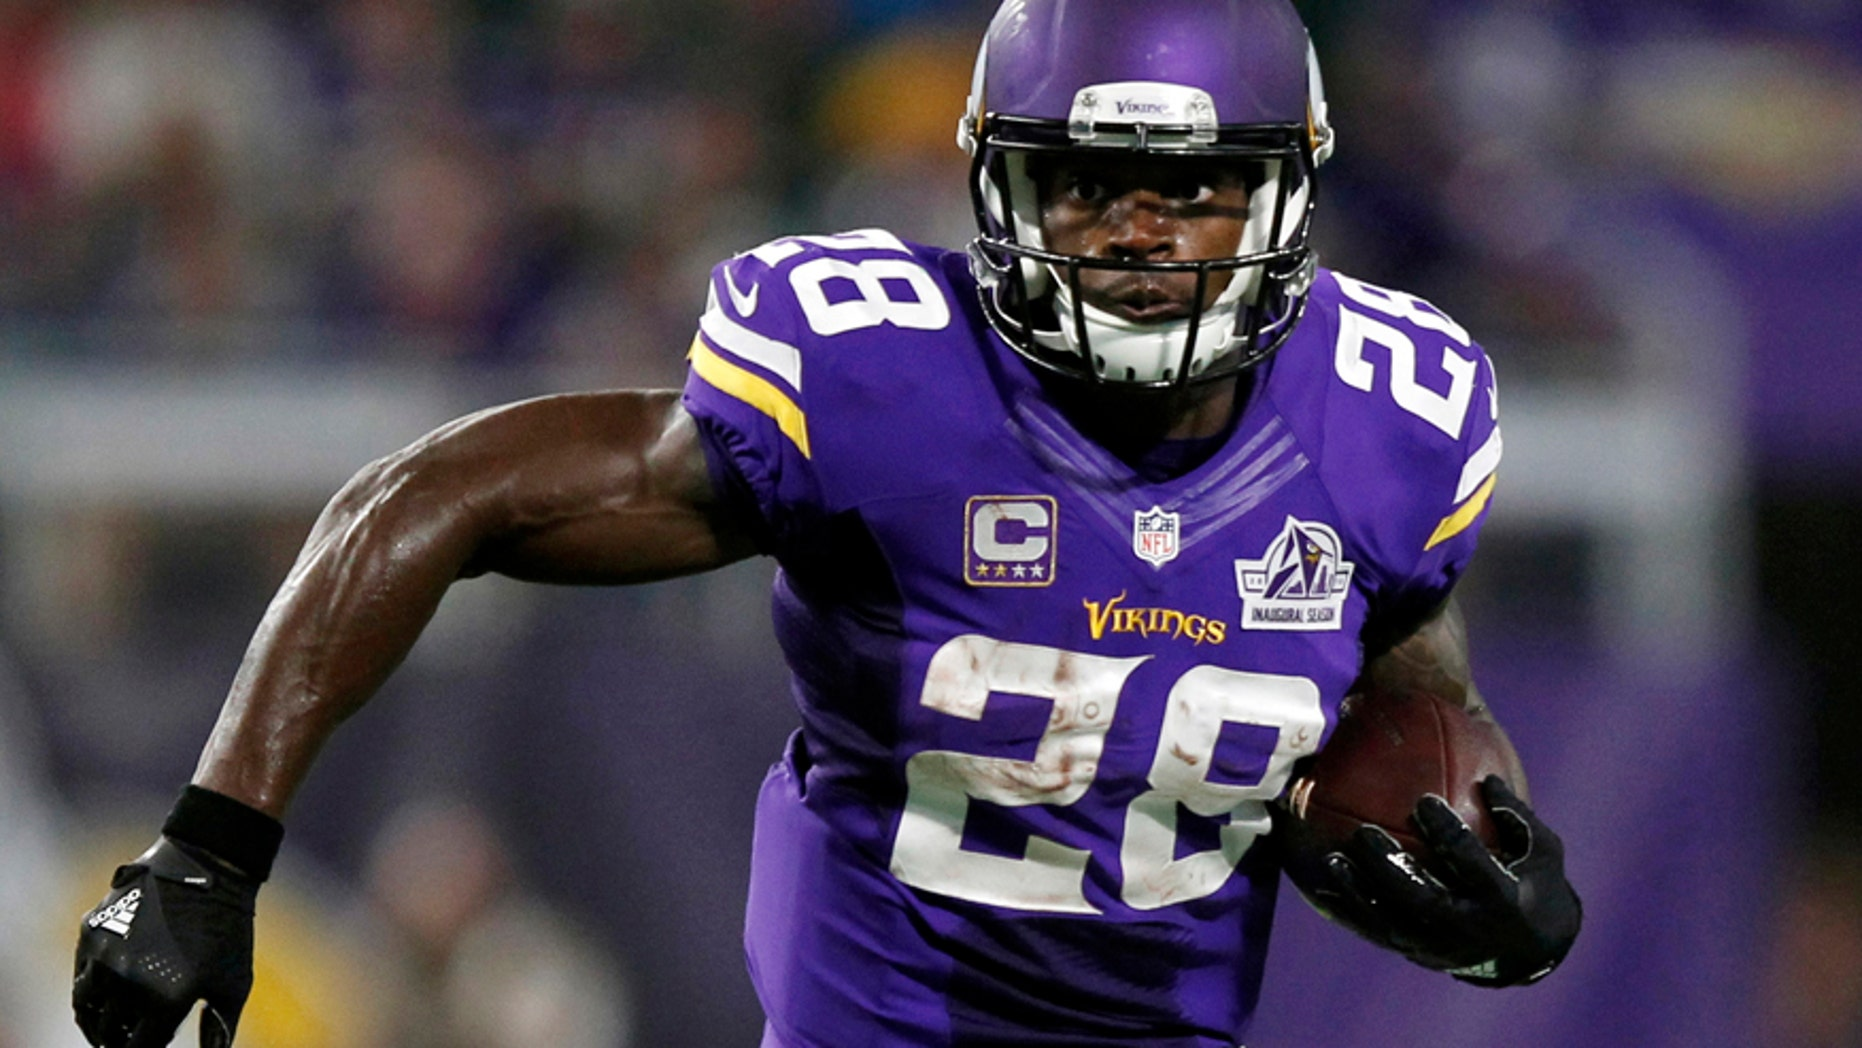 Sept. 18, 2016: Minnesota Vikings running back Adrian Peterson carries the ball during the first half of an NFL football game against the Green Bay Packers in Minneapolis